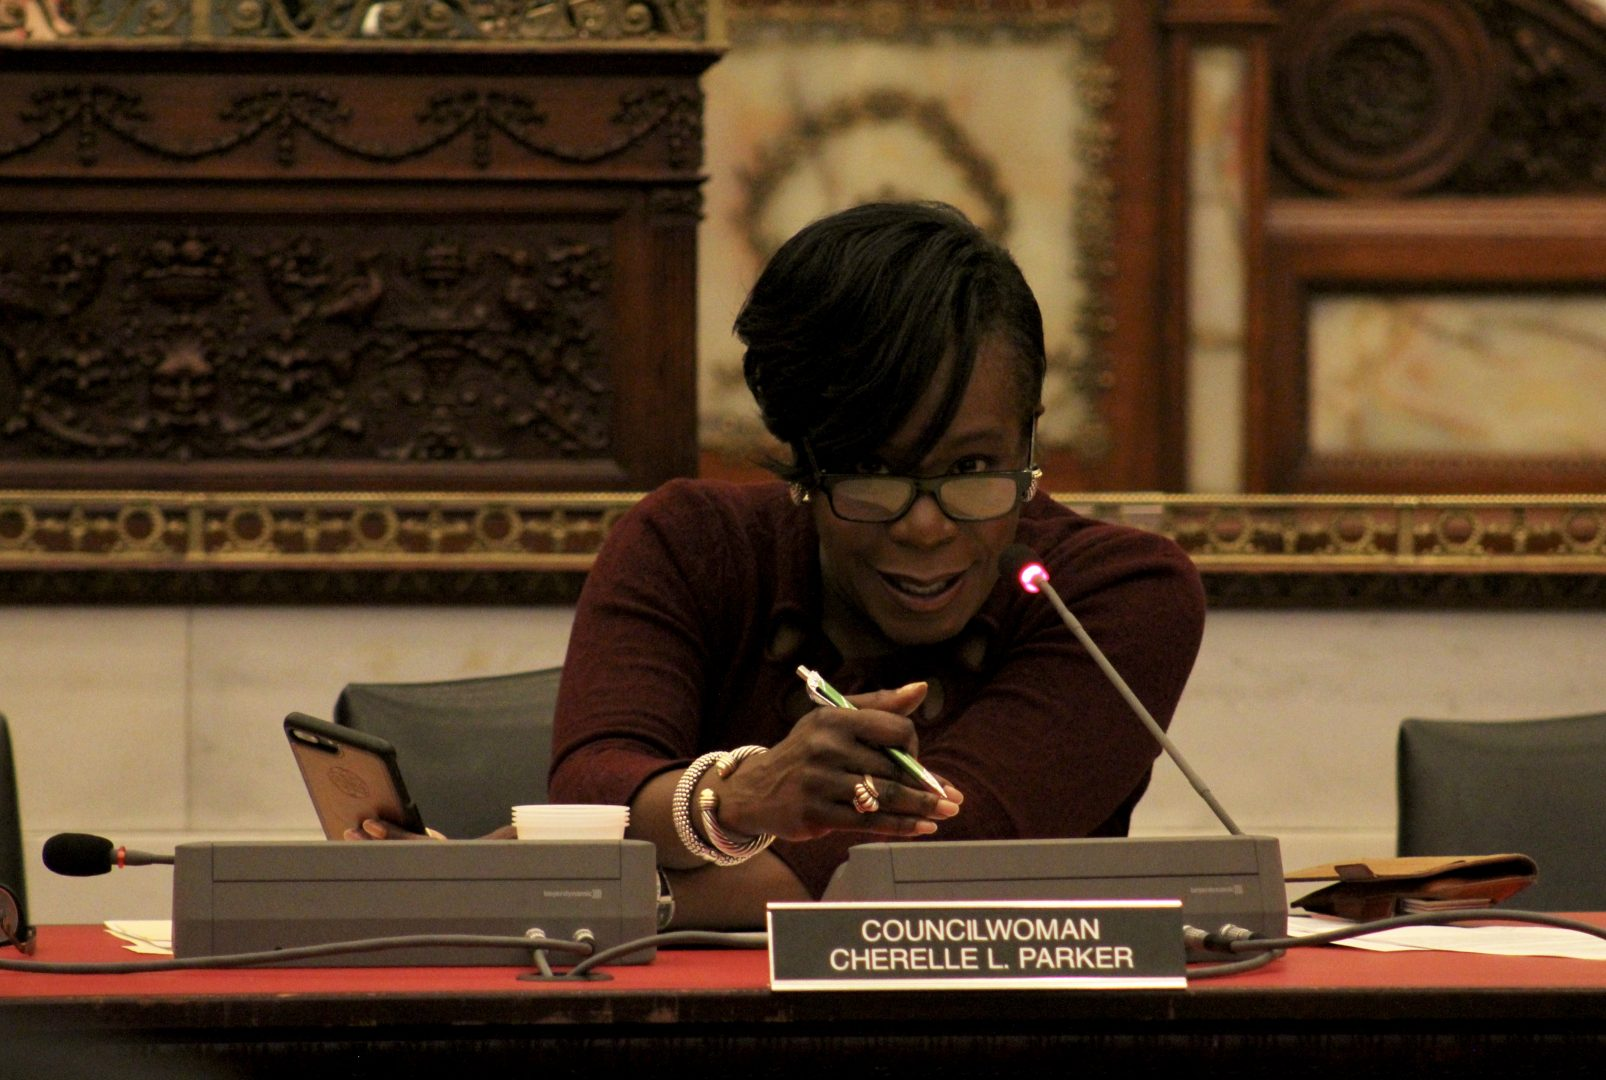 Majority Leader Cherelle Parker sits at a table during the March 11 hearing and gestures forward with one hand. She is leaning forward while speaking into a microphone.